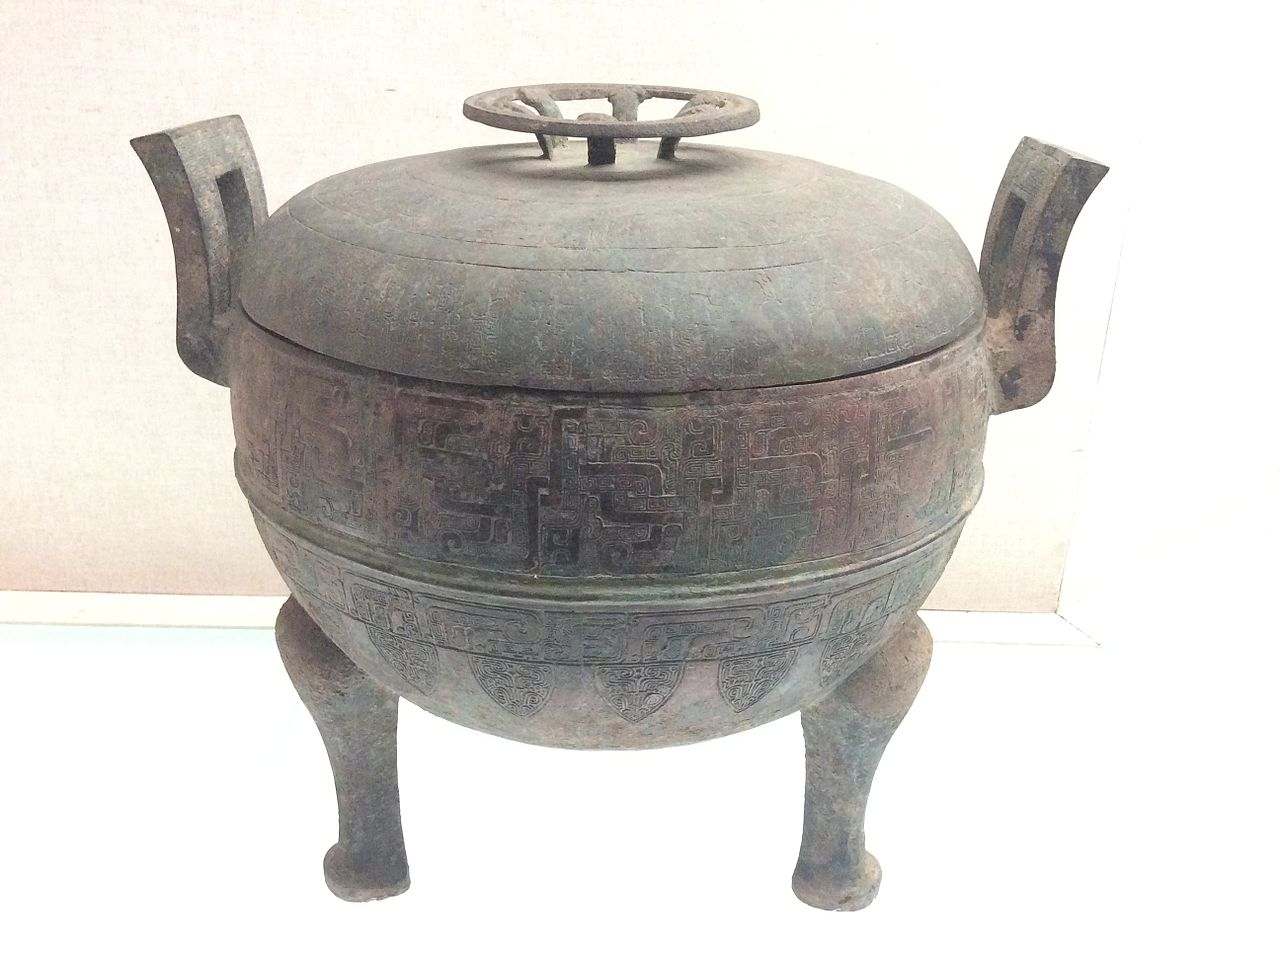 Shanxi_Museum_-_ding_with_a_lid_and_interlaced_hydras_motifs.JPG